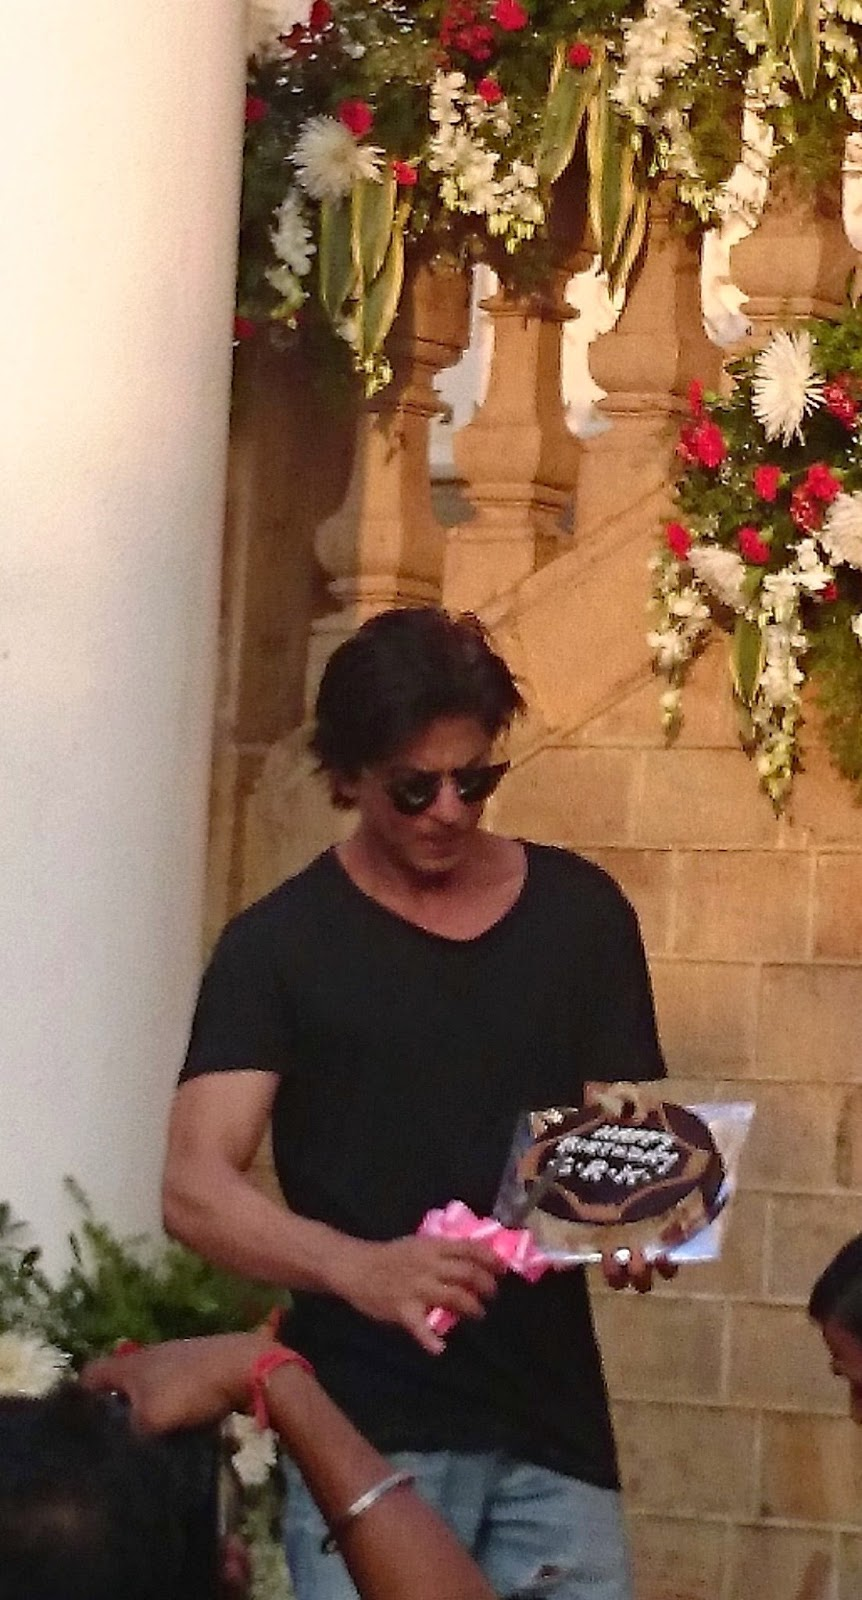 srk cutting the cake shah rukh khan with his 49th birthday cake